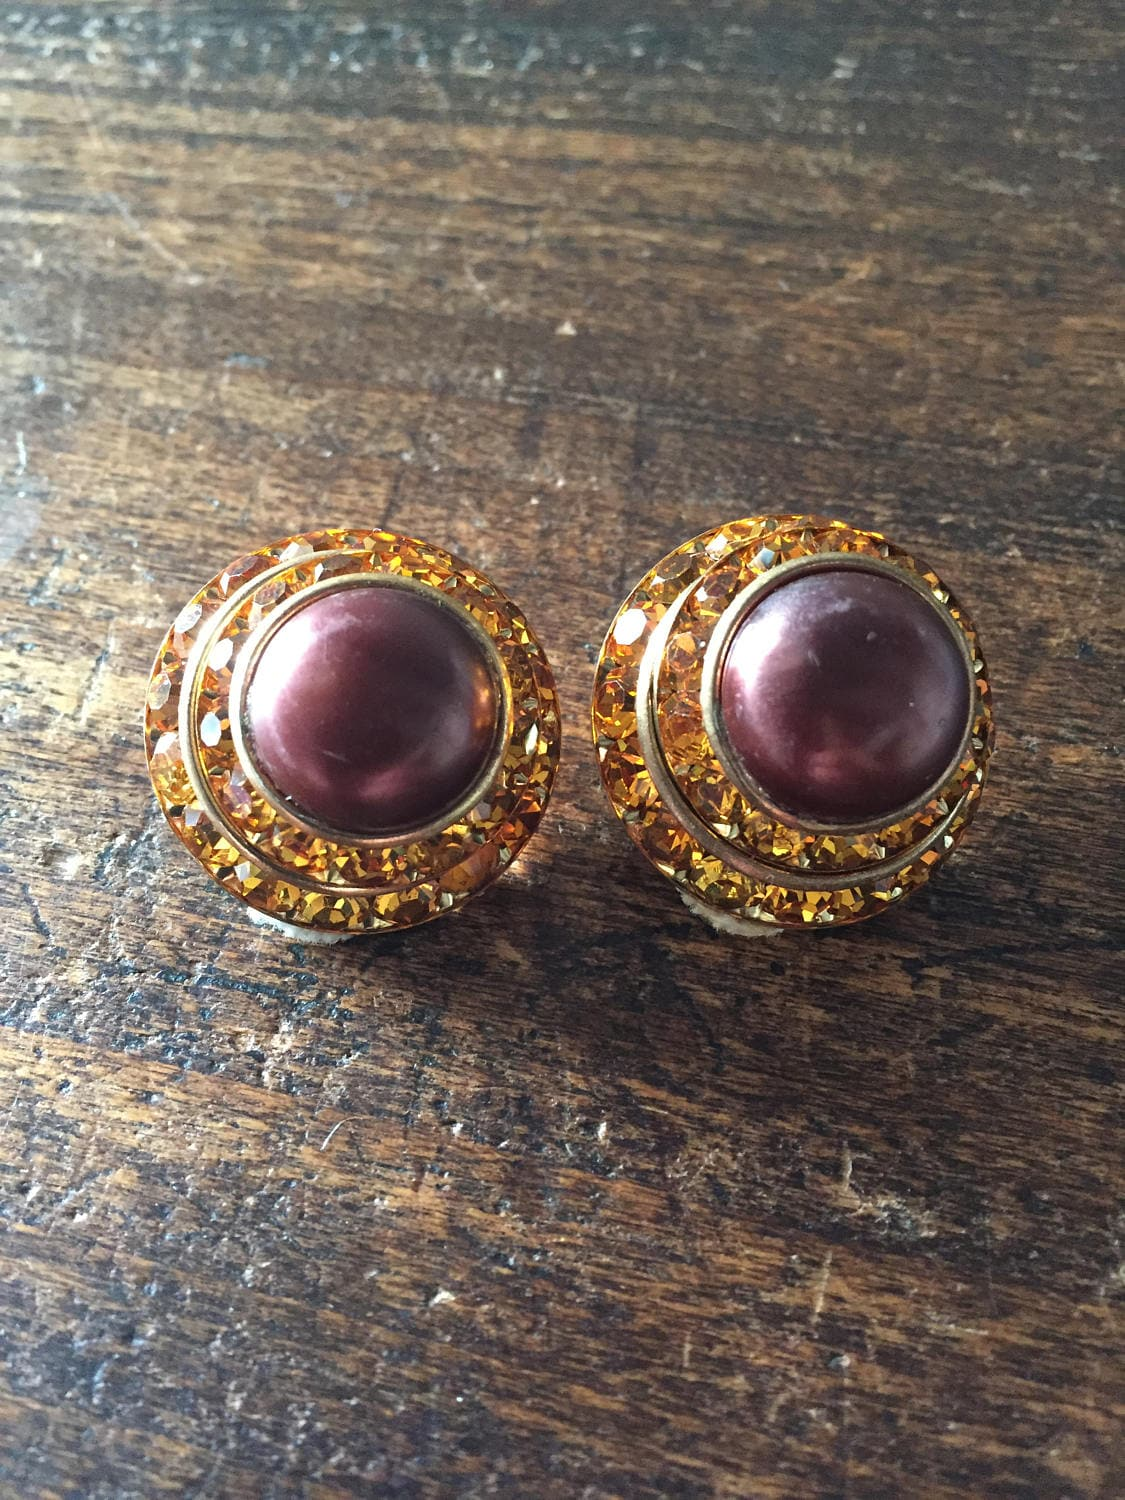 Brown Lucite Earrings Amber Rhinestone 1950s Vintage Jewelry Mothers Day SALE